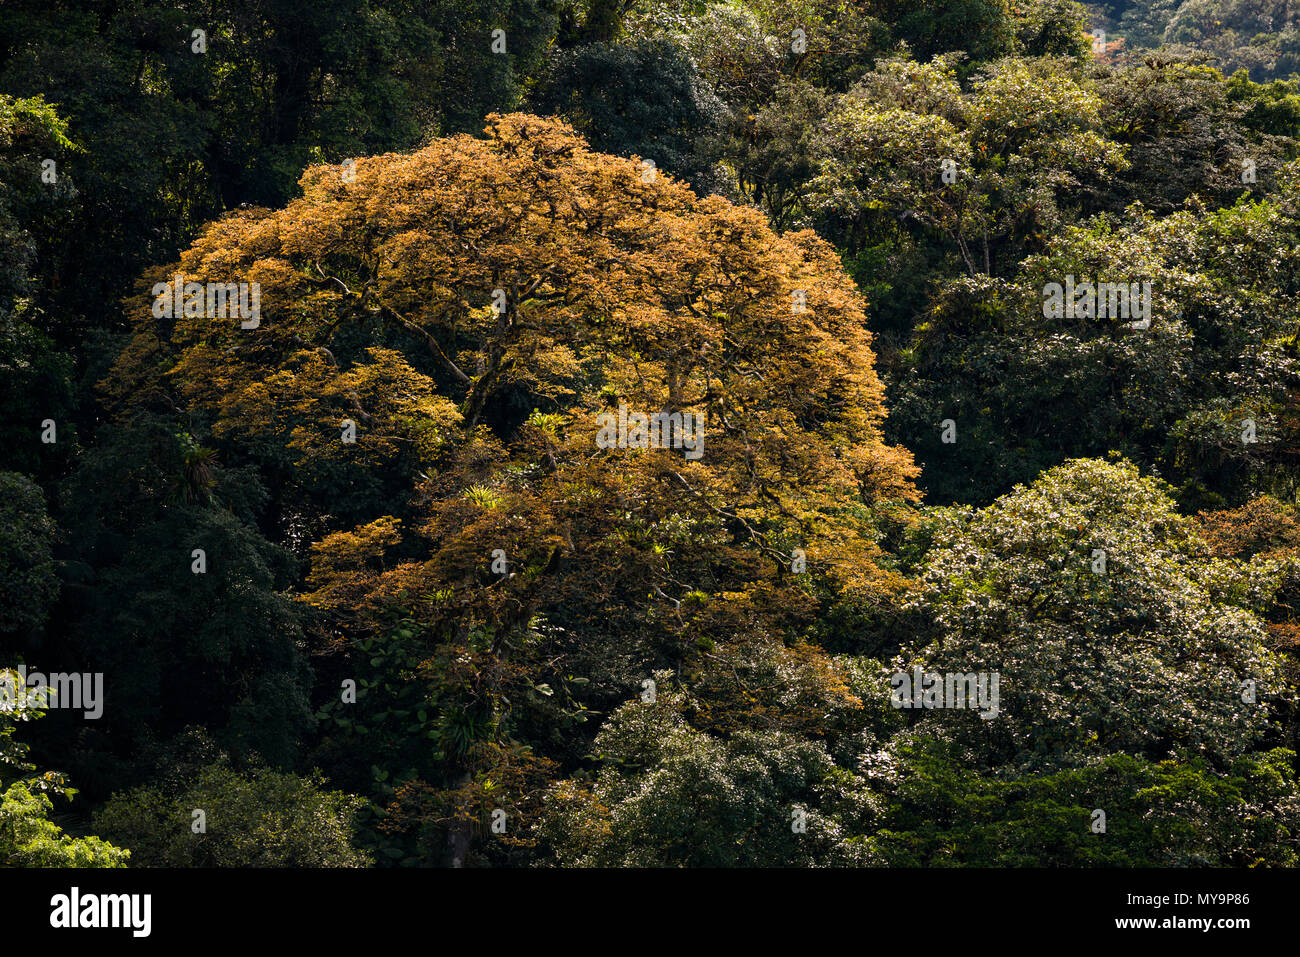 Big Jatobá trees (Hymenaea courbaril) with colorful new leaves, in primary Atlantic Rainforest of SE Brazil. - Stock Image